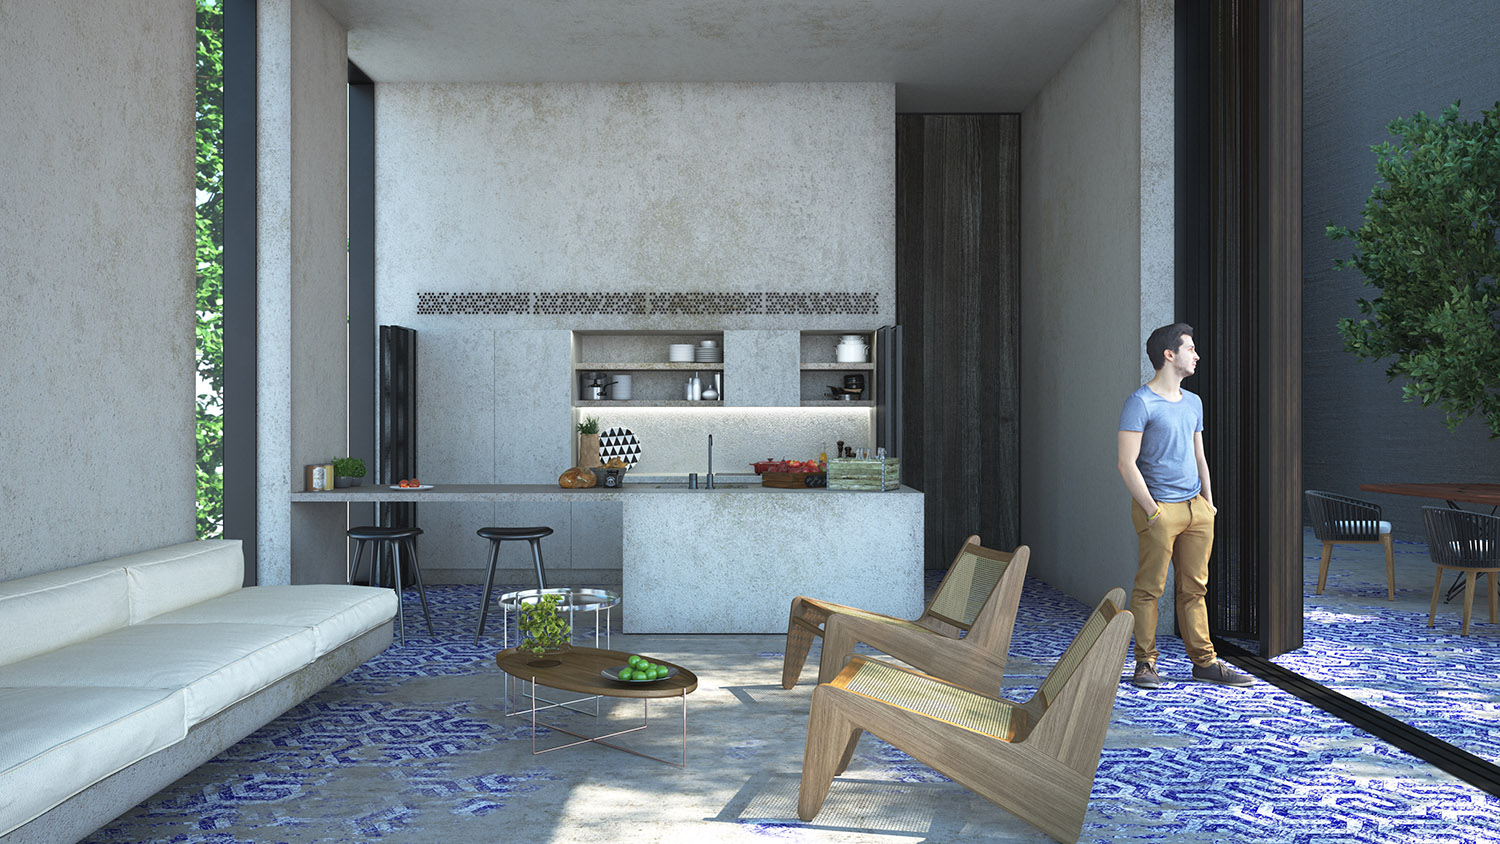 Interior Perspective from Accomodation Units TABANLIOGLU ARCHITECTS